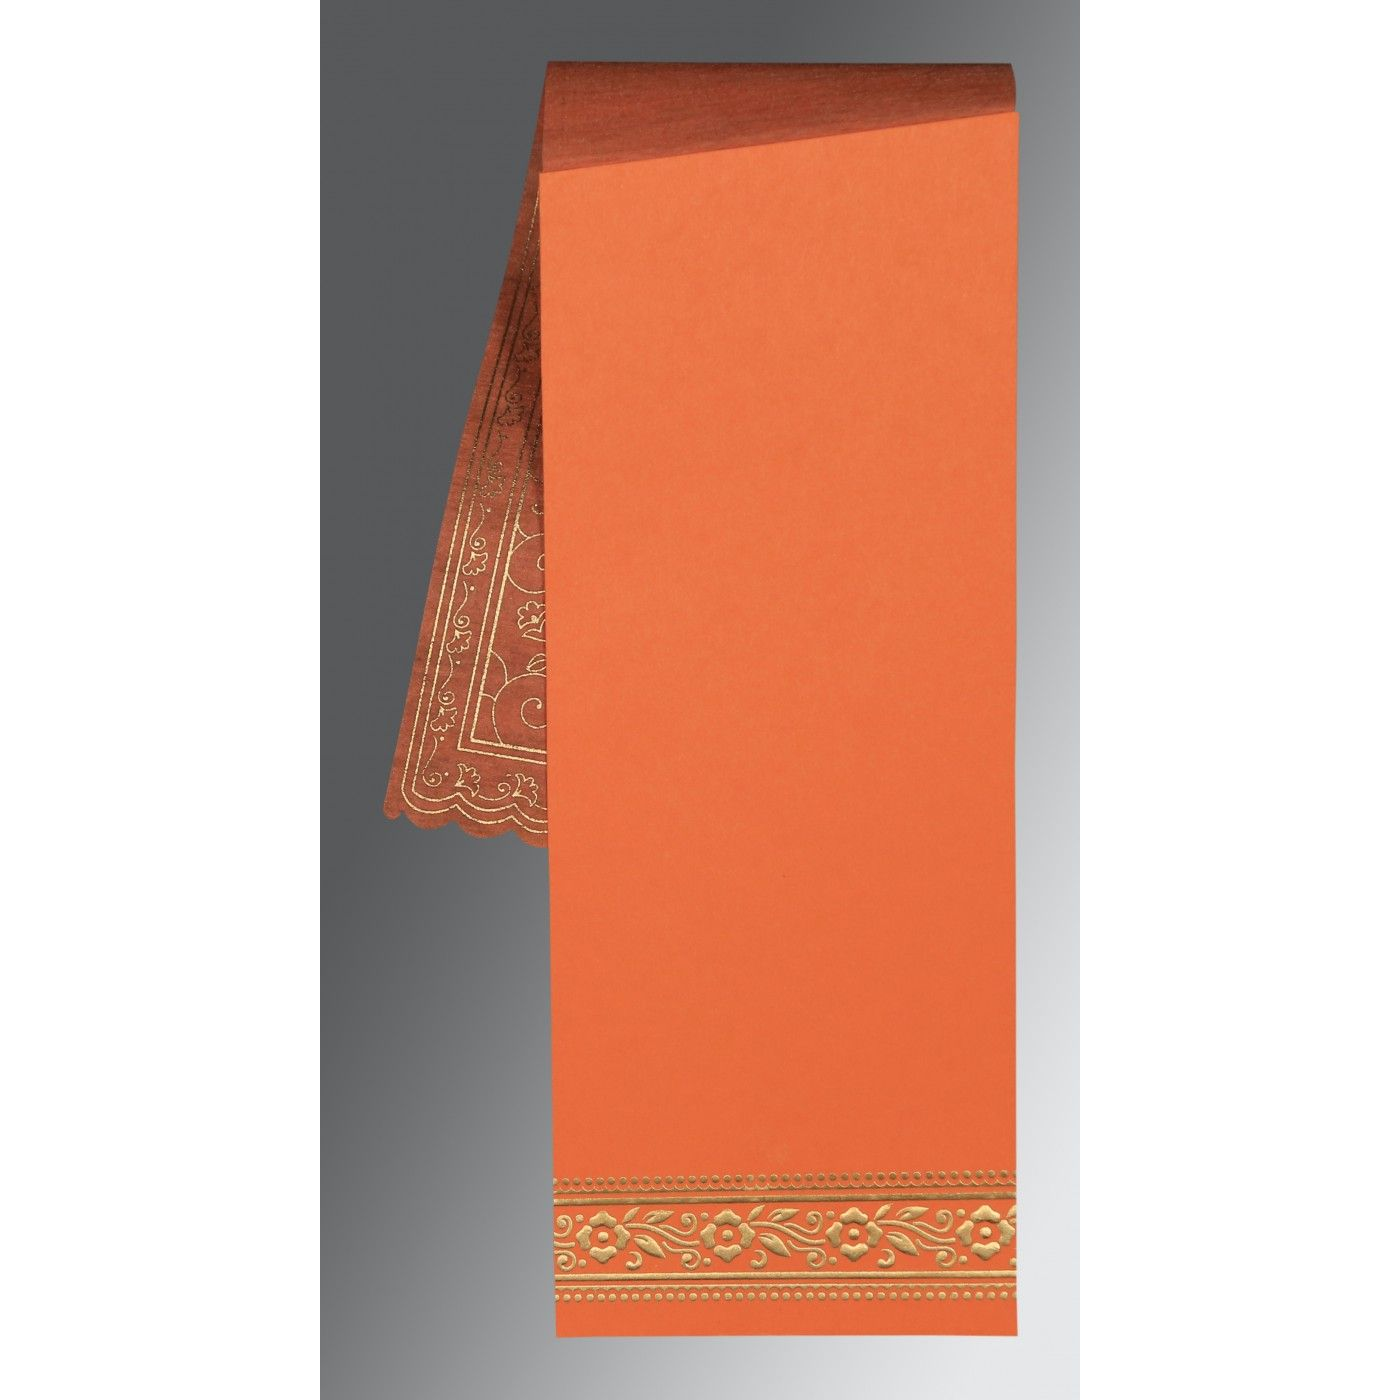 SALMON WOOLY SCREEN PRINTED WEDDING INVITATION : CW-8220N - IndianWeddingCards